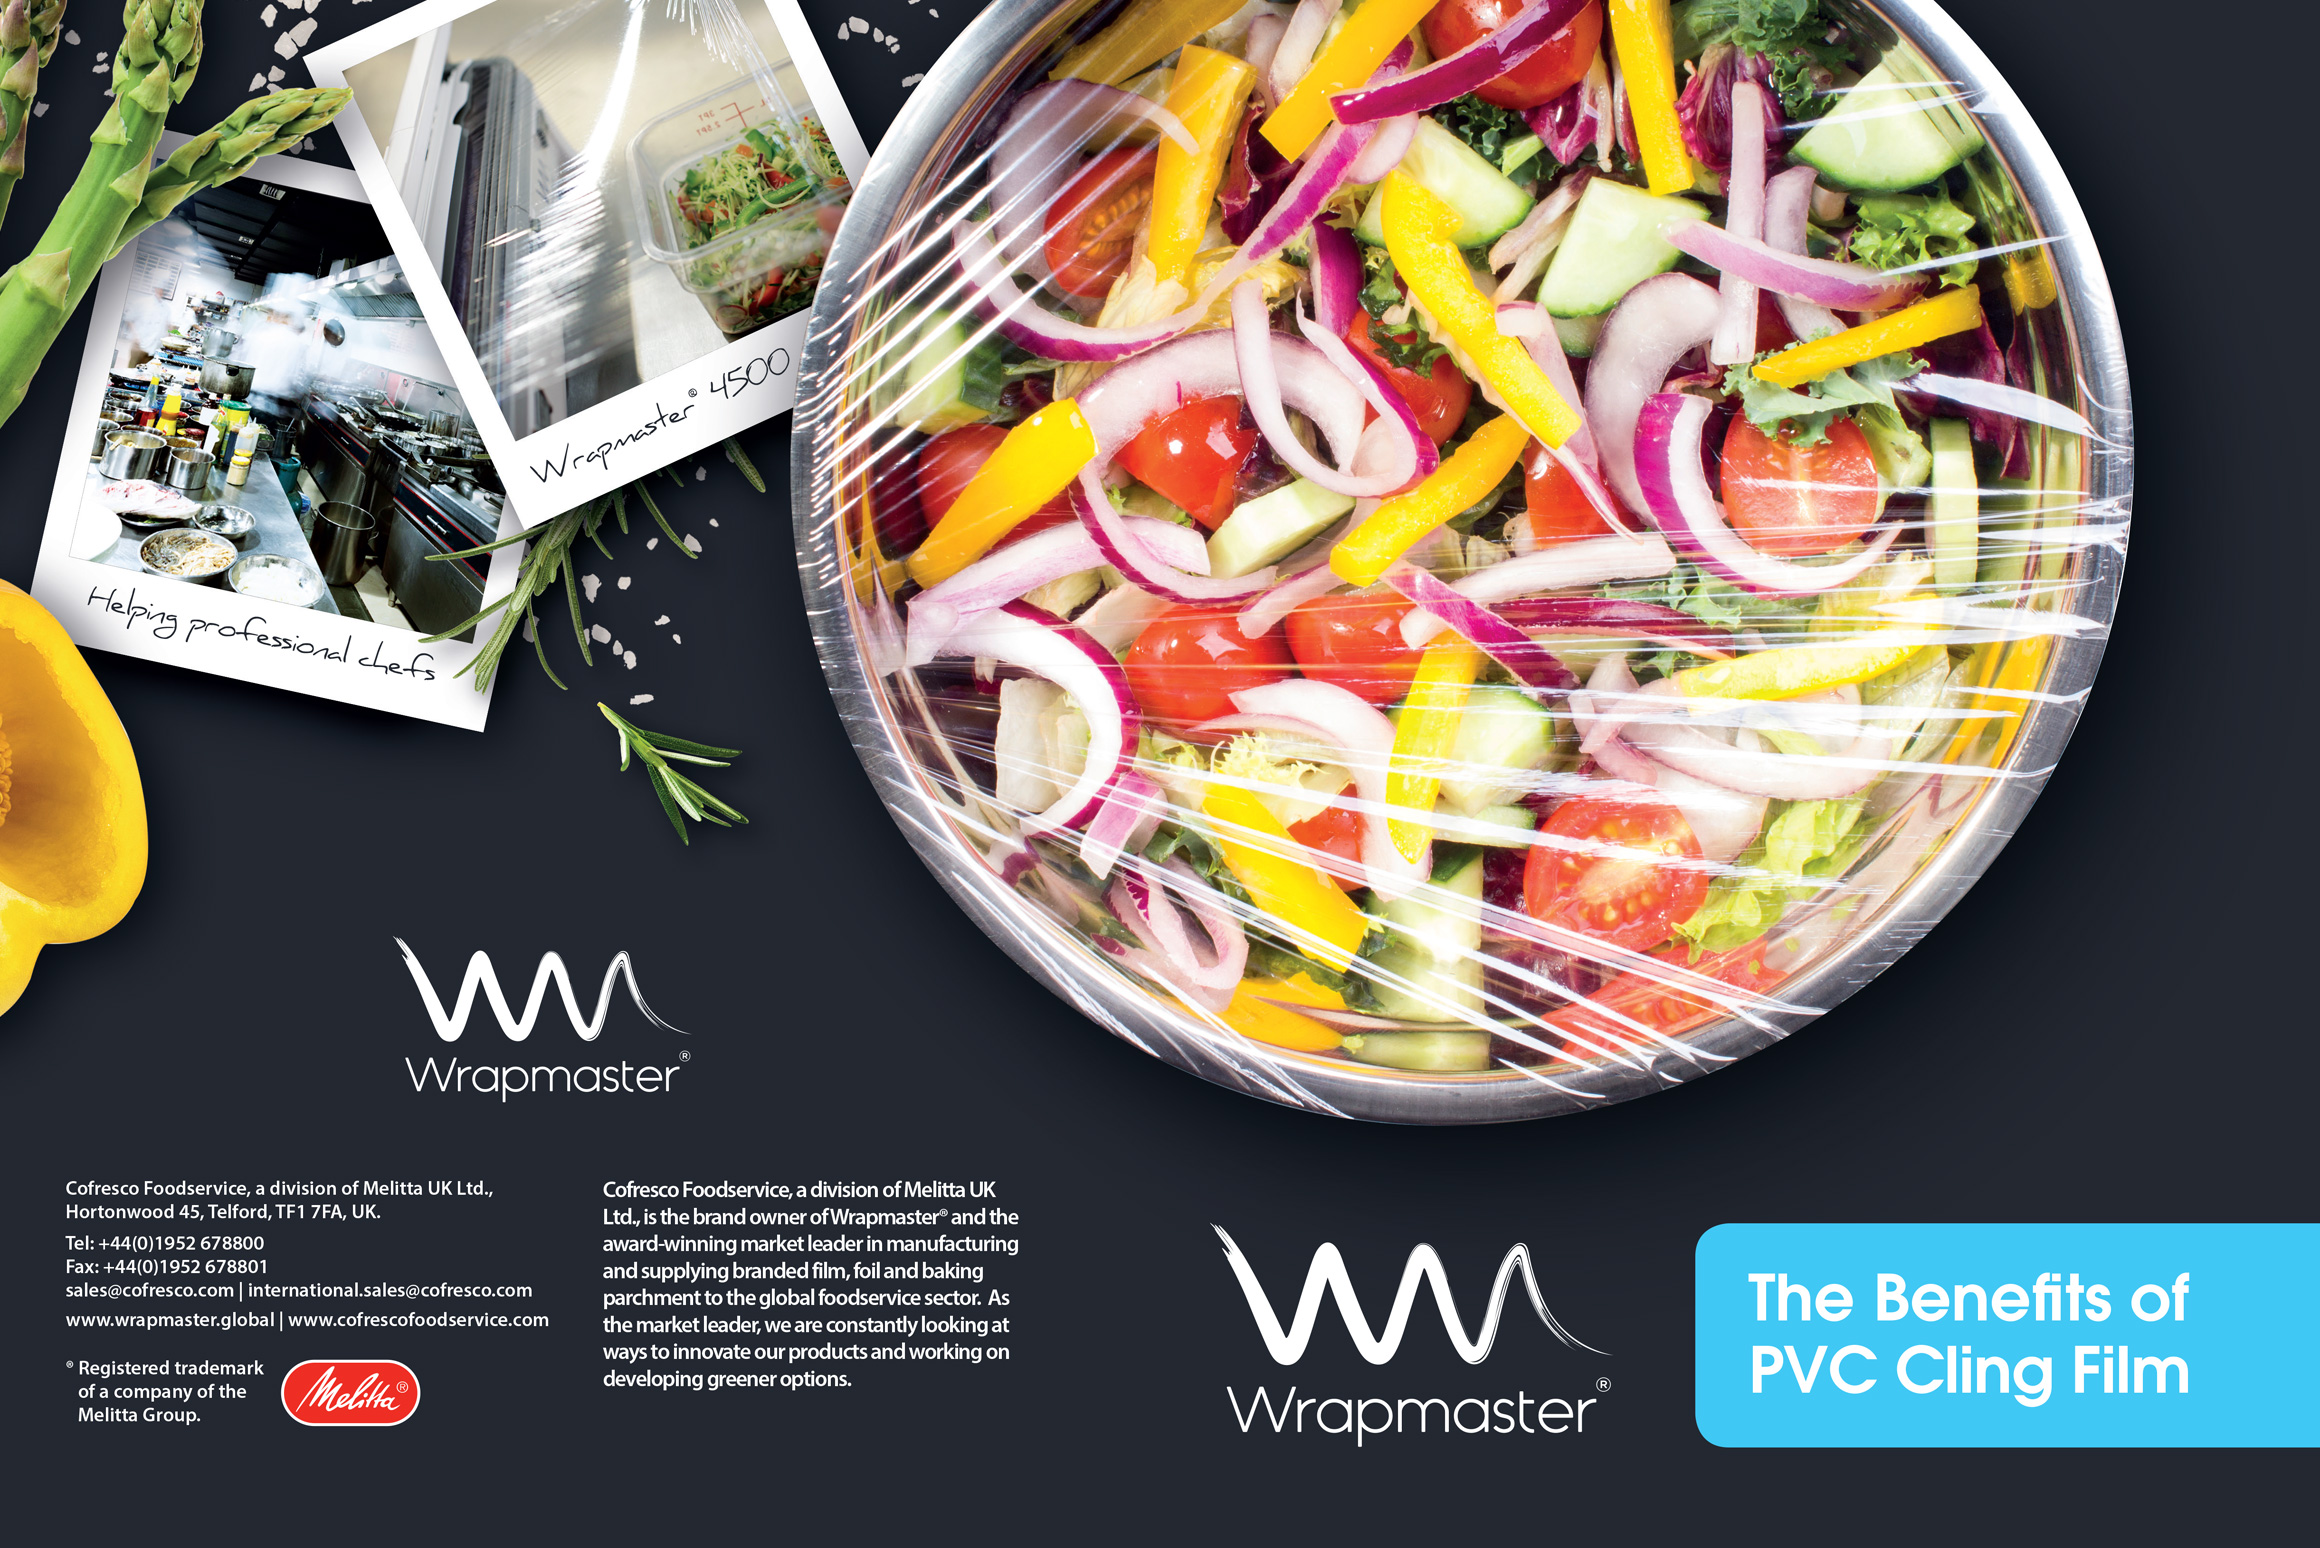 Life in any kitchen is never without its challenges and for the foodservice sector being sustainable is key in all areas of the business, especially in today's 'plastic storm'.  Wrapmaster has been trusted by professional chefs for over 20 years for their award-winning range of catering dispensers. In-light of the recent crisis over single use plastics, they set us the difficult task of creating a transparent (excuse the pun), hard hitting campaign that highlighted the benefits of using PVC cling film whilst counteracting the misconceptions on PVC cling film.